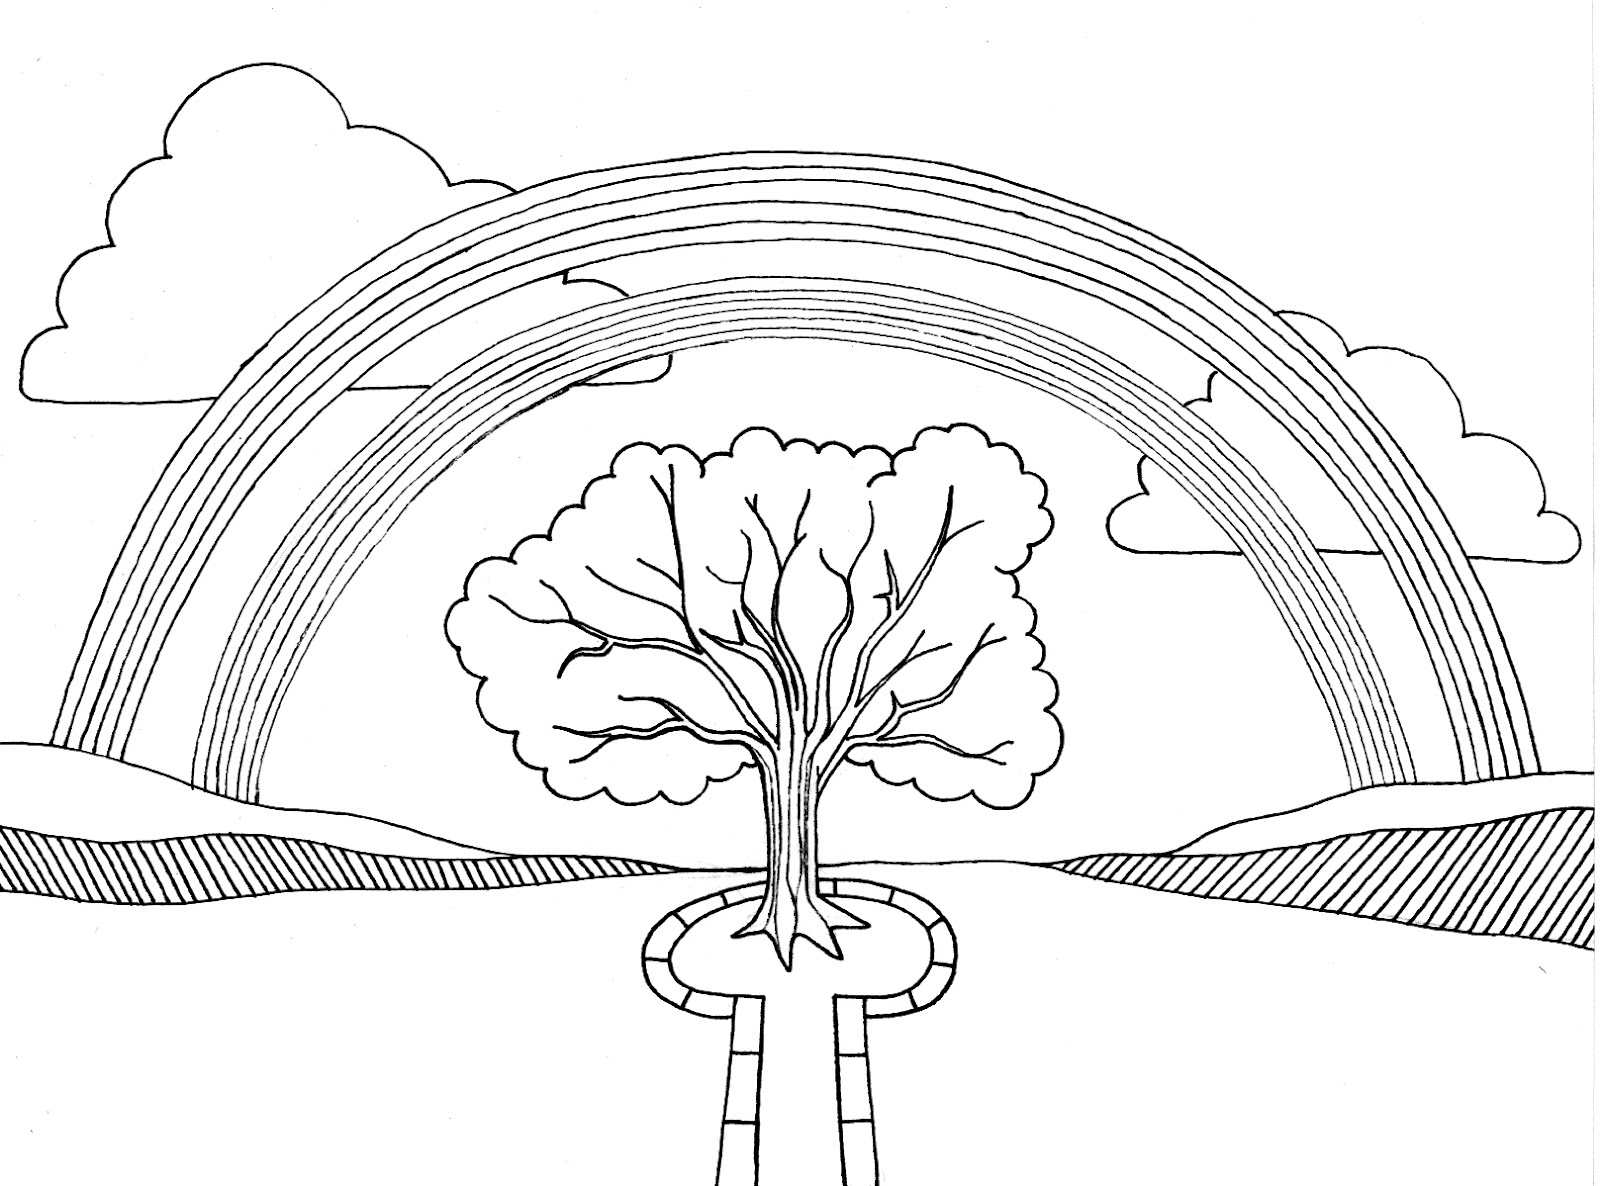 rainbow coloring pages for kid - photo#19